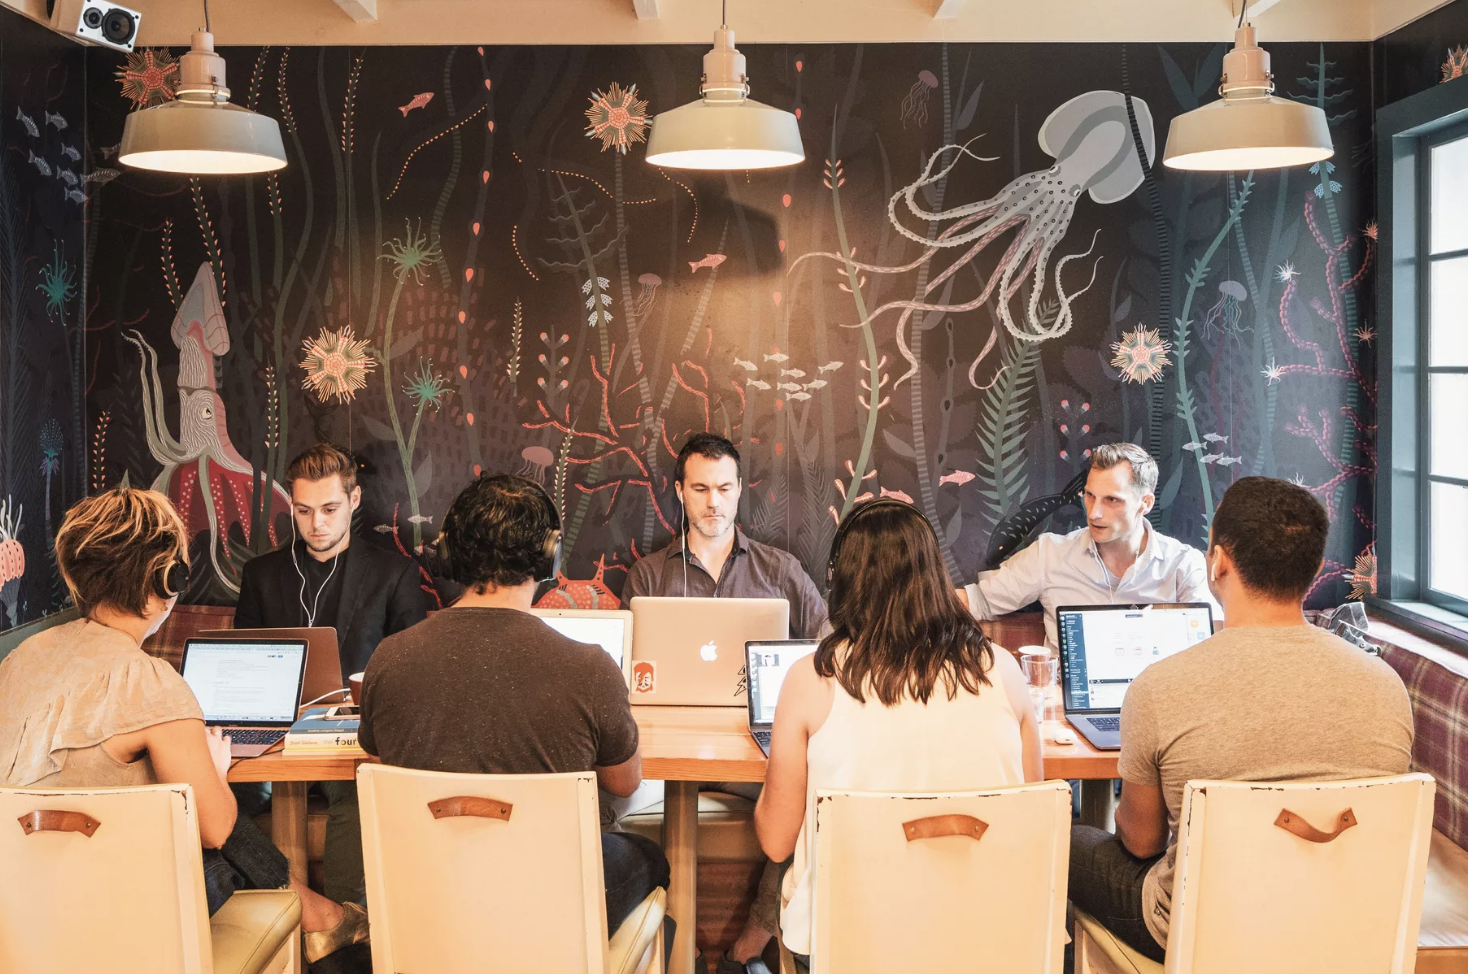 WeWork Is Shutting Down A Restaurant Coworking Startup It Acquired Only Four Months Ago